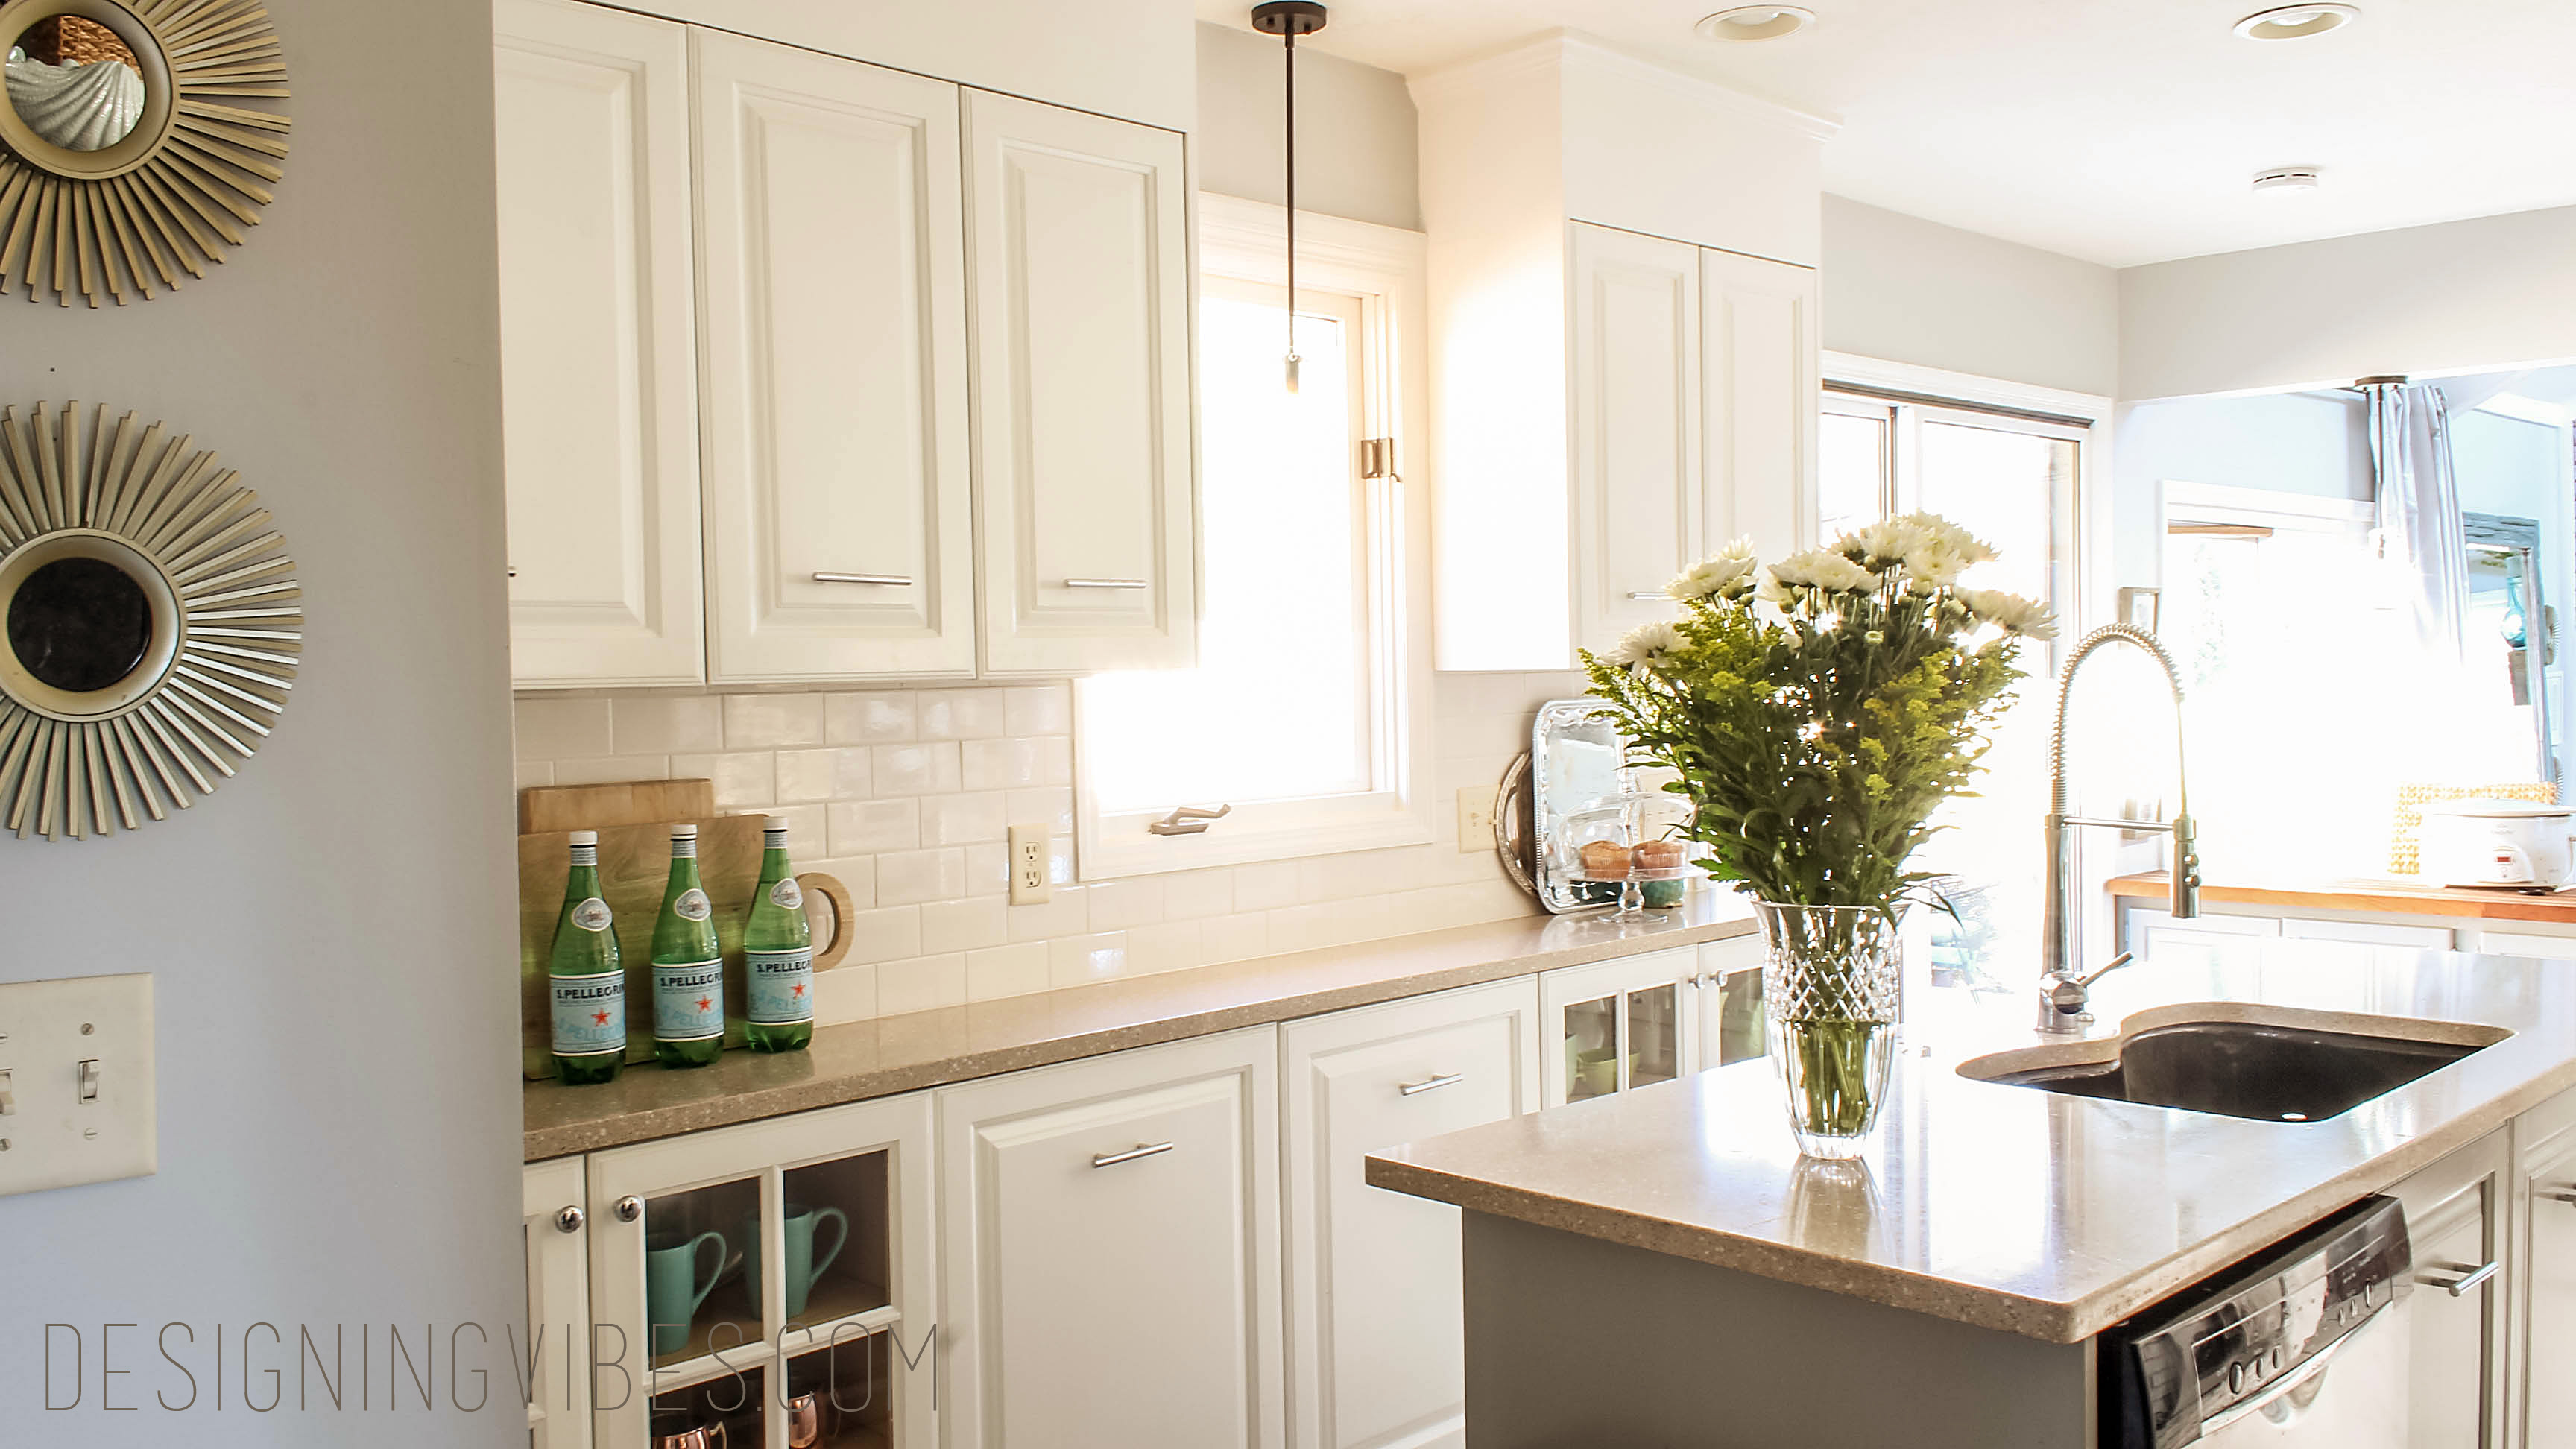 How To Make Kitchen Cabinets Taller Designing Vibes